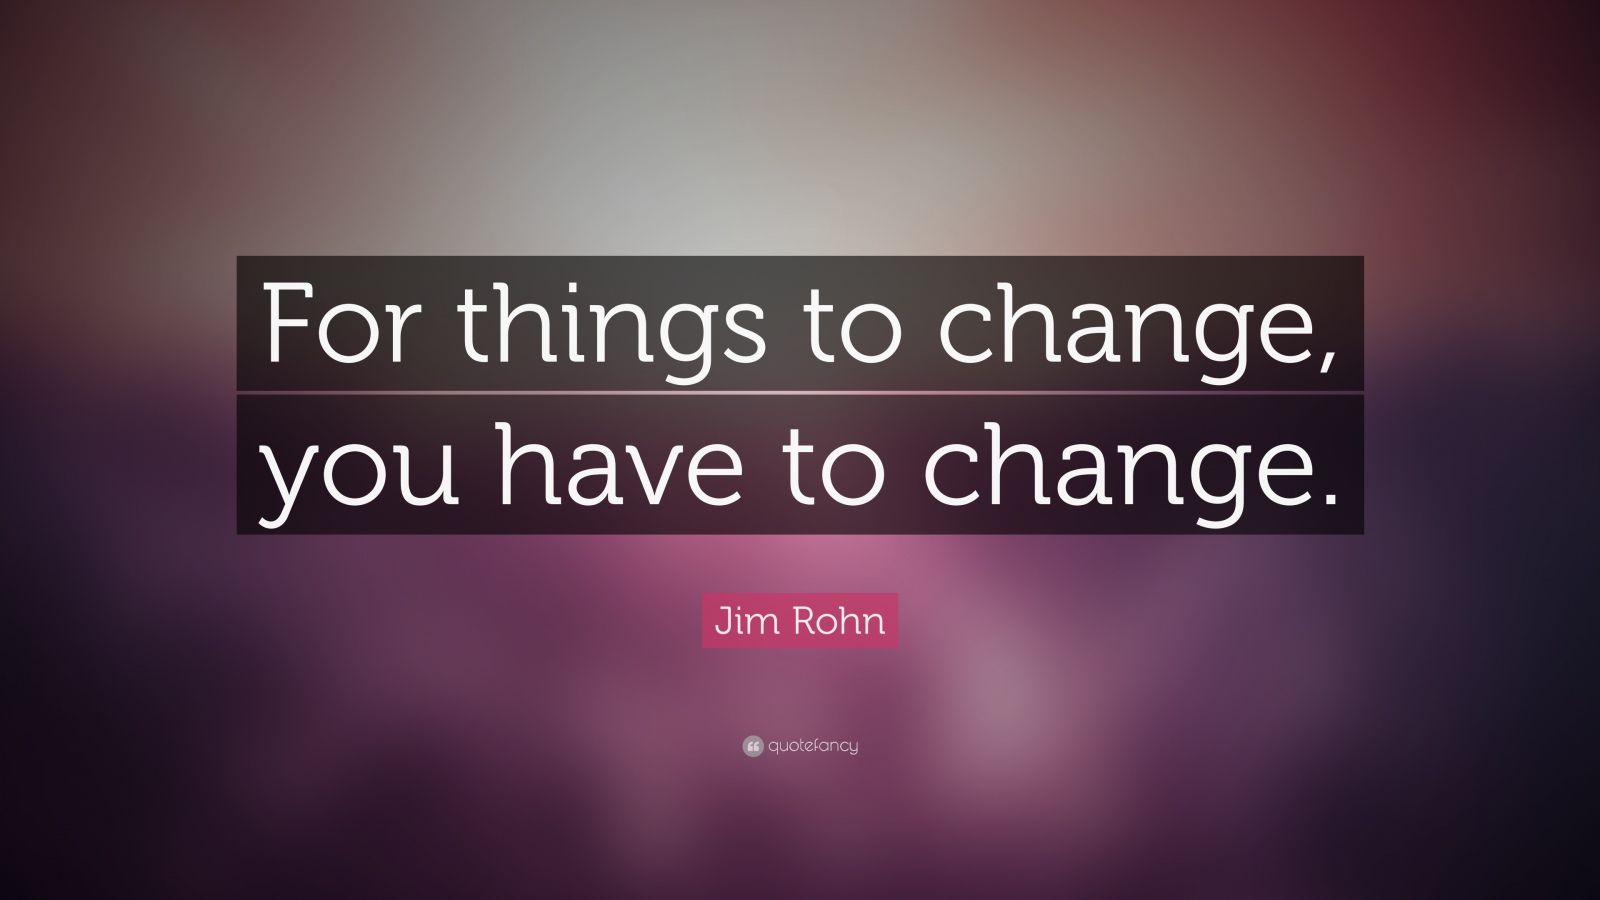 """Jim Rohn Quote: """"For things to change. you have to change."""" (20 wallpapers) - Quotefancy"""